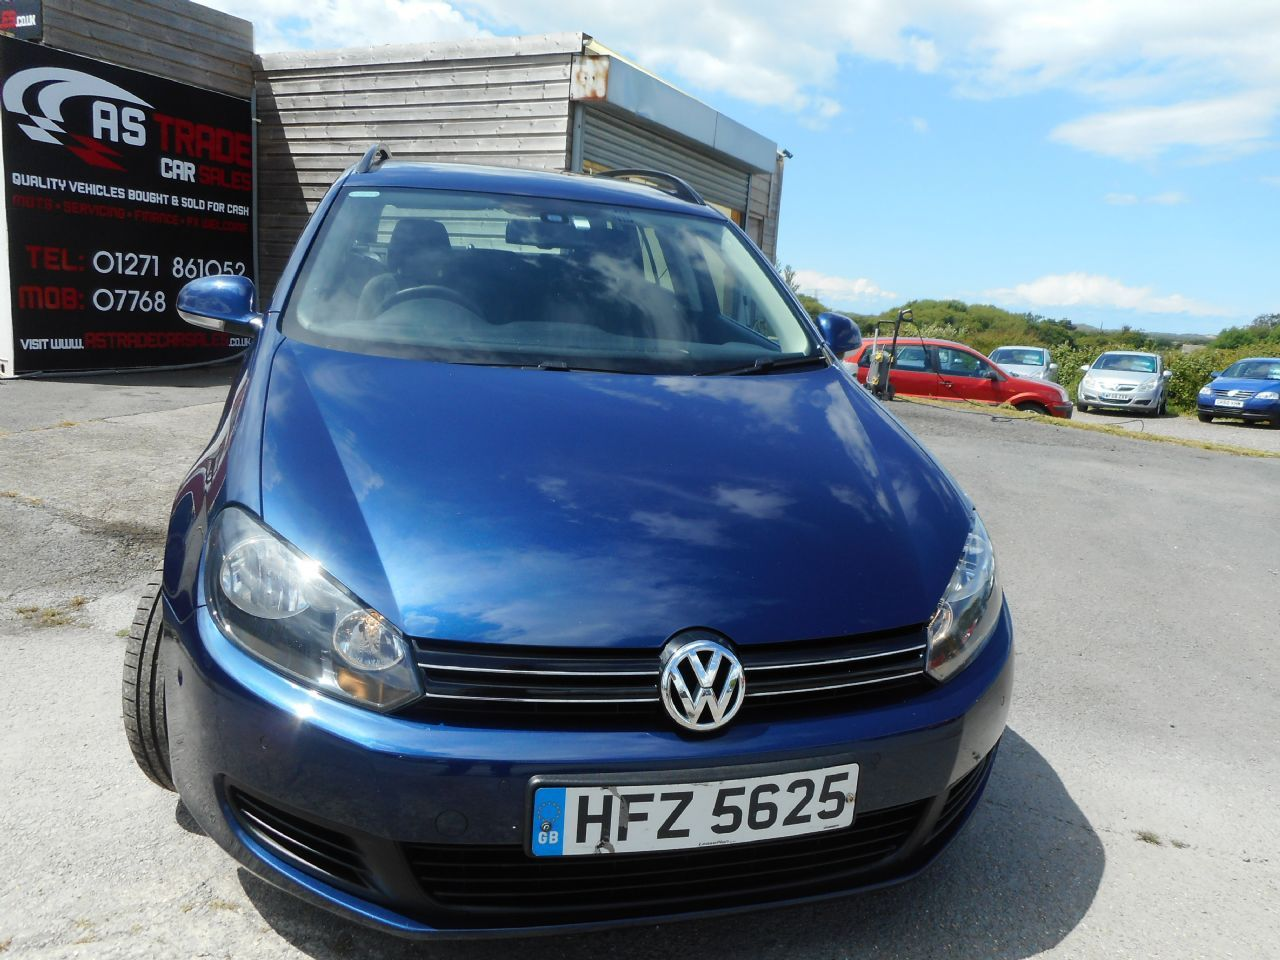 VOLKSWAGENGOLFSE TDI CR 2.0 for sale